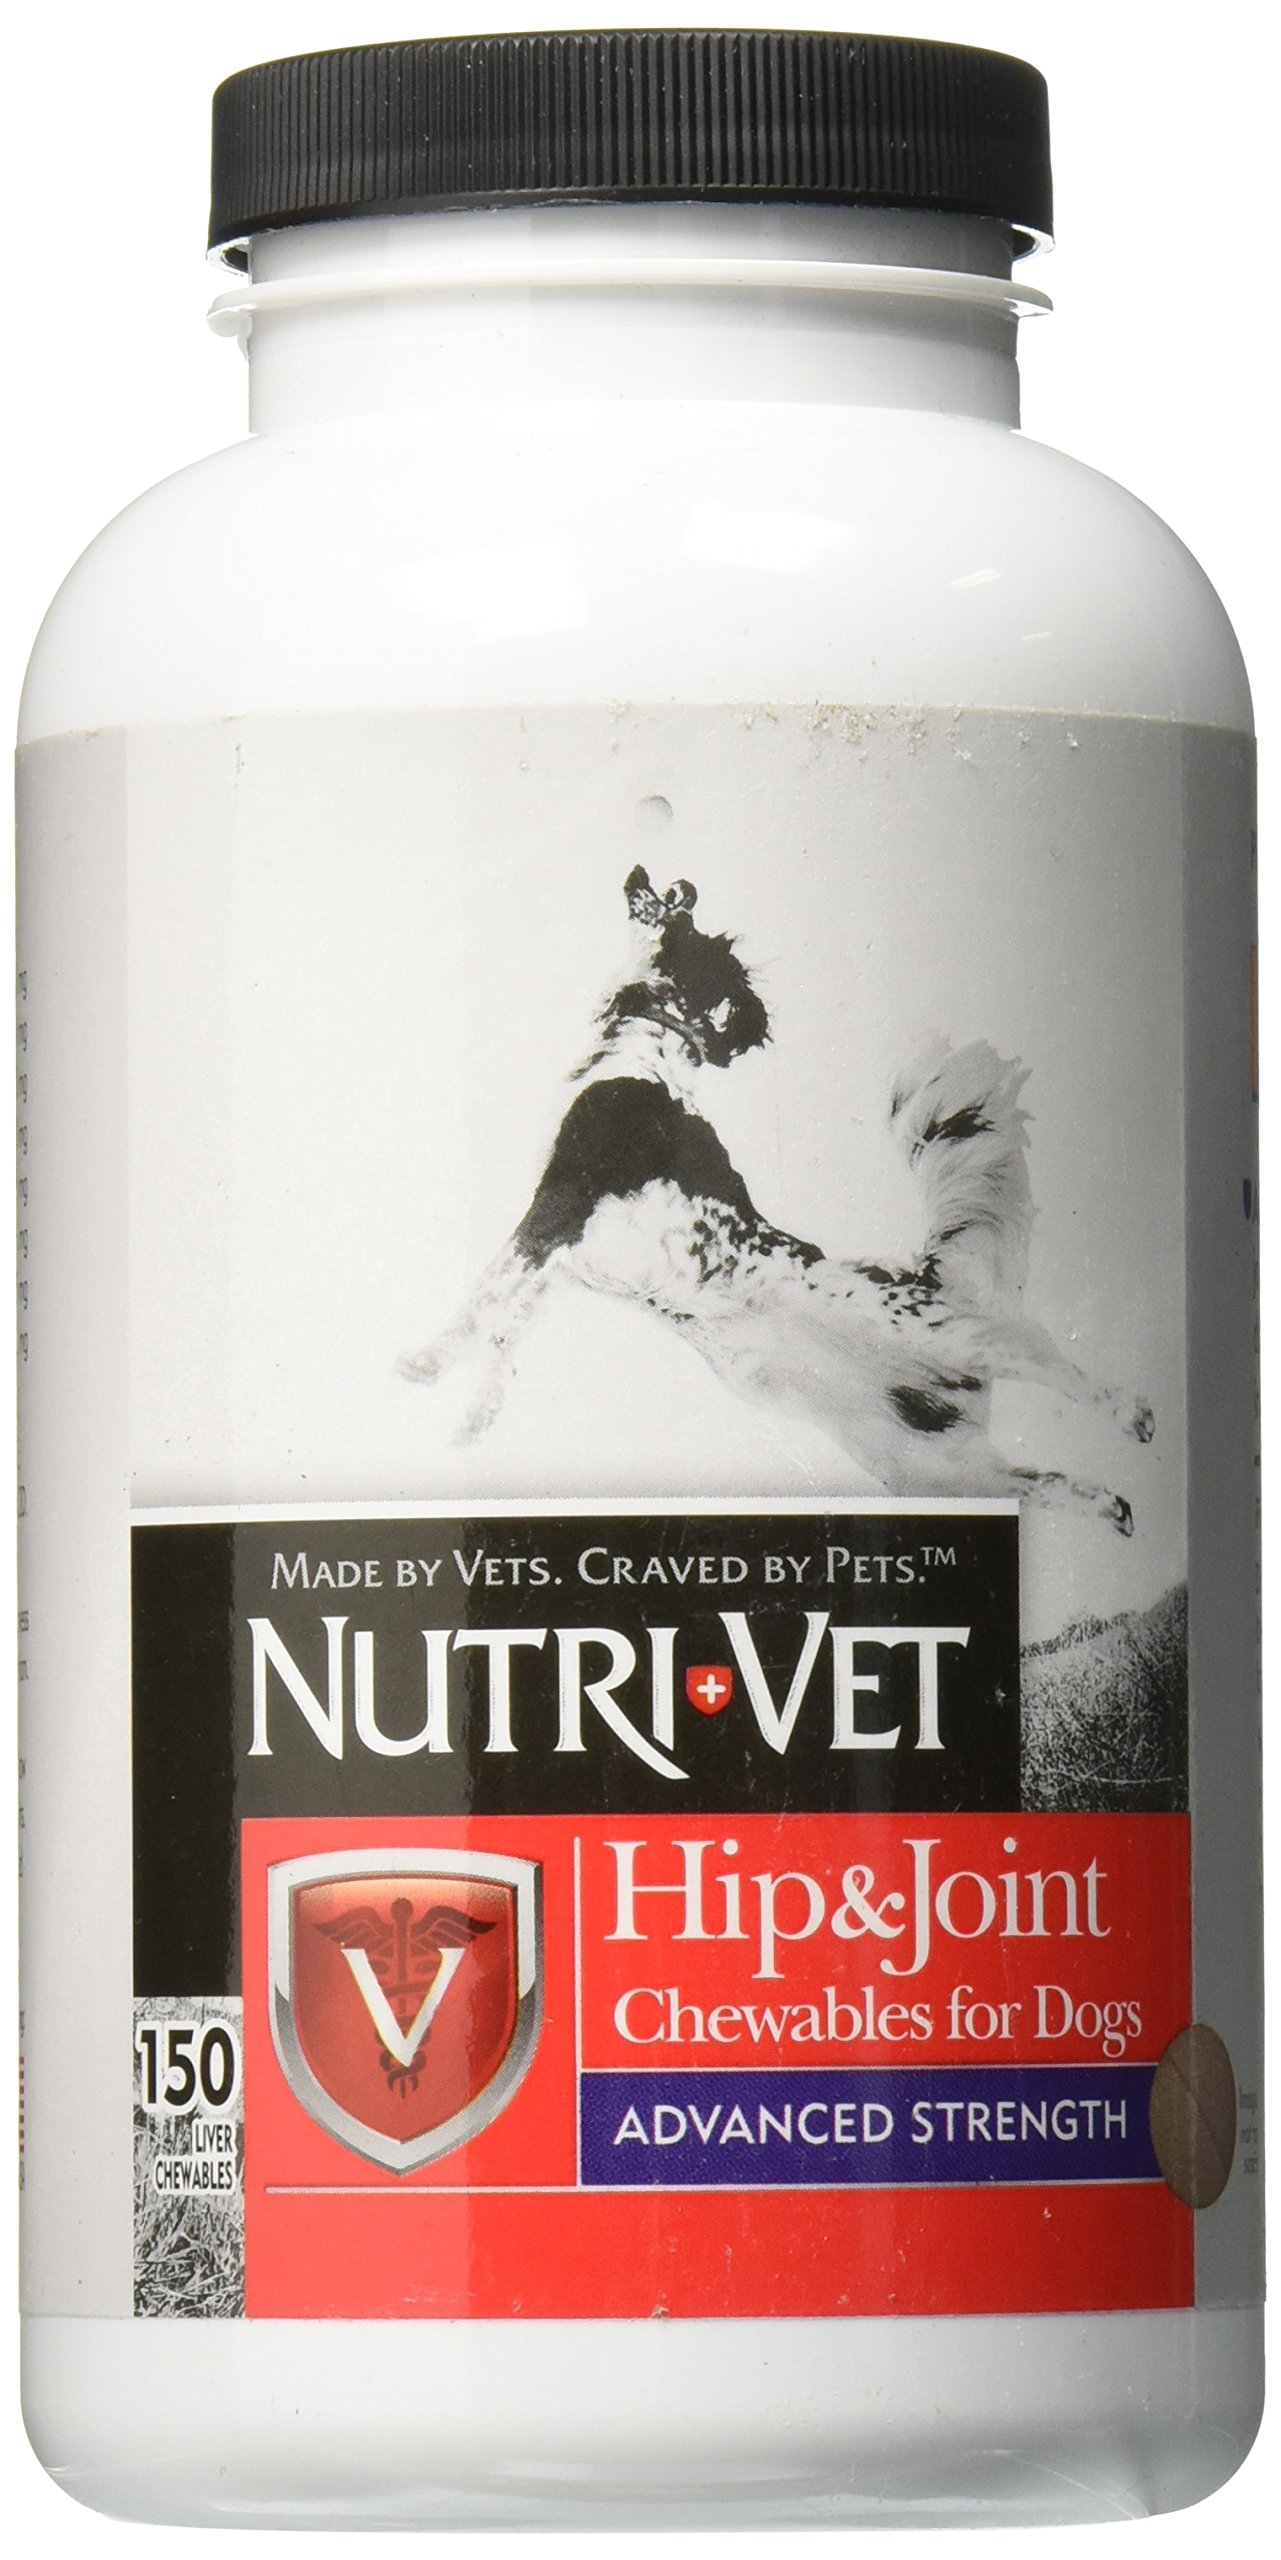 Nutri-Vet Hip & Joint Advanced Strength Chewables for Dogs, 150-Count